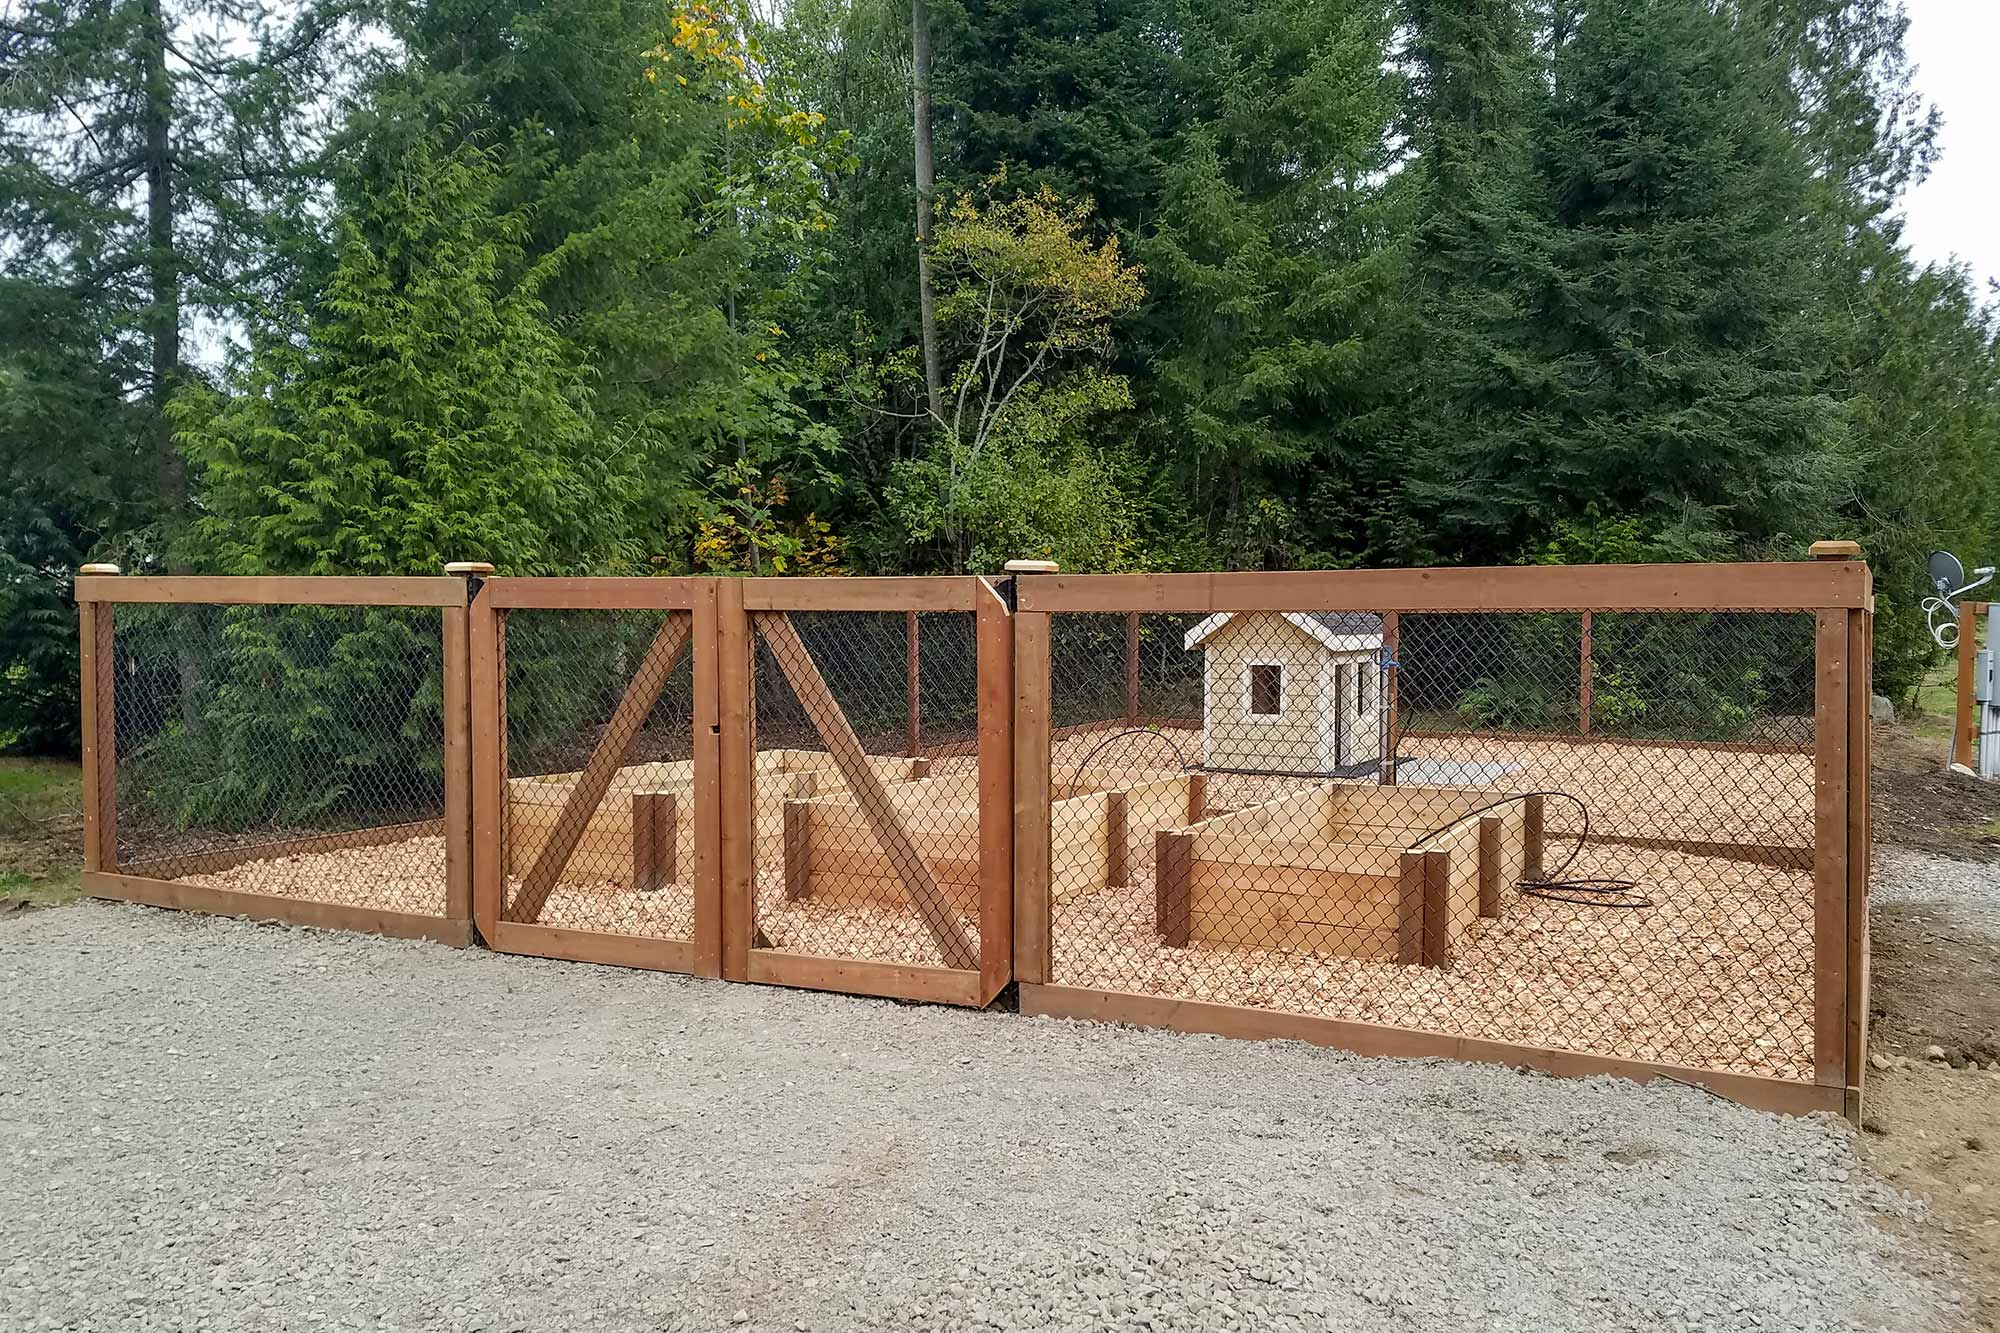 Kennel fence ajb landscaping fence ajb landscaping fence built this unique outdoor dog kennel that doubles as a raised garden baanklon Gallery